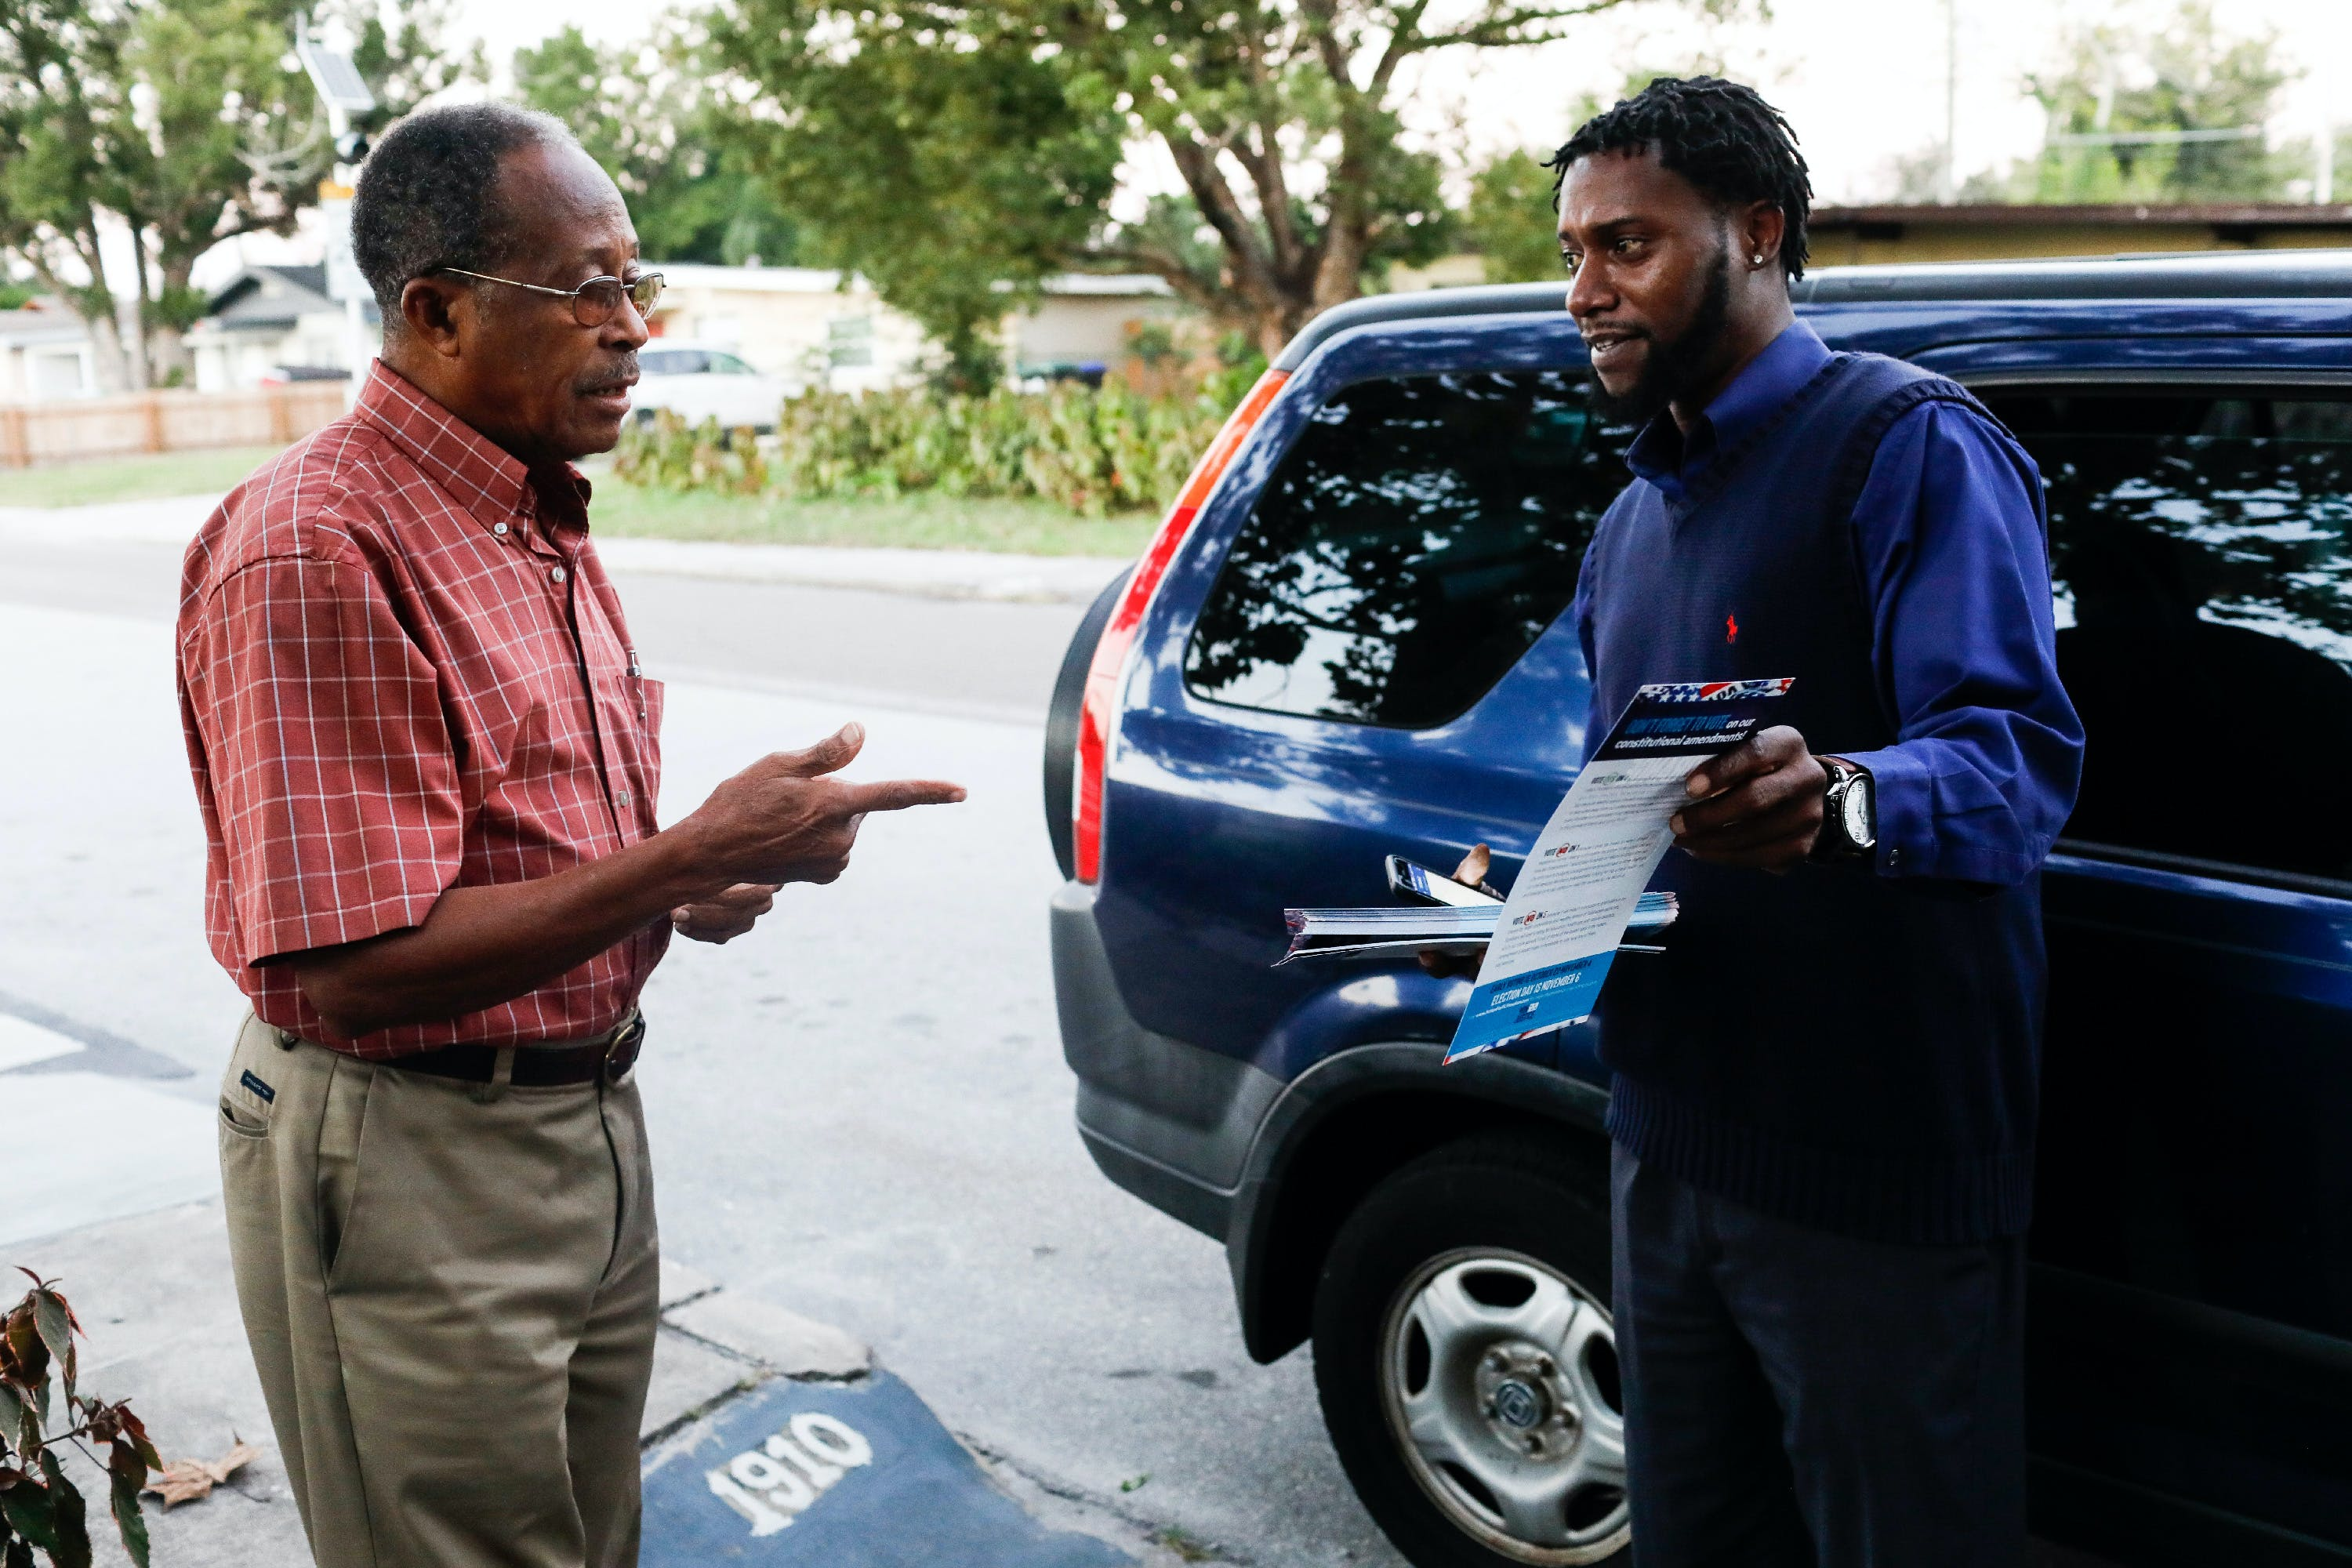 Travis Hailes talks to Mony Dorce about voting while canvassing in Orlando on Monday, October 29, 2018. In the upcoming election on November 6, Floridians will have the opportunity to vote on Amendment 4, which would give people who have been convicted of a felony the restored right to vote. Credit: Eve Edelheit for The Intercept